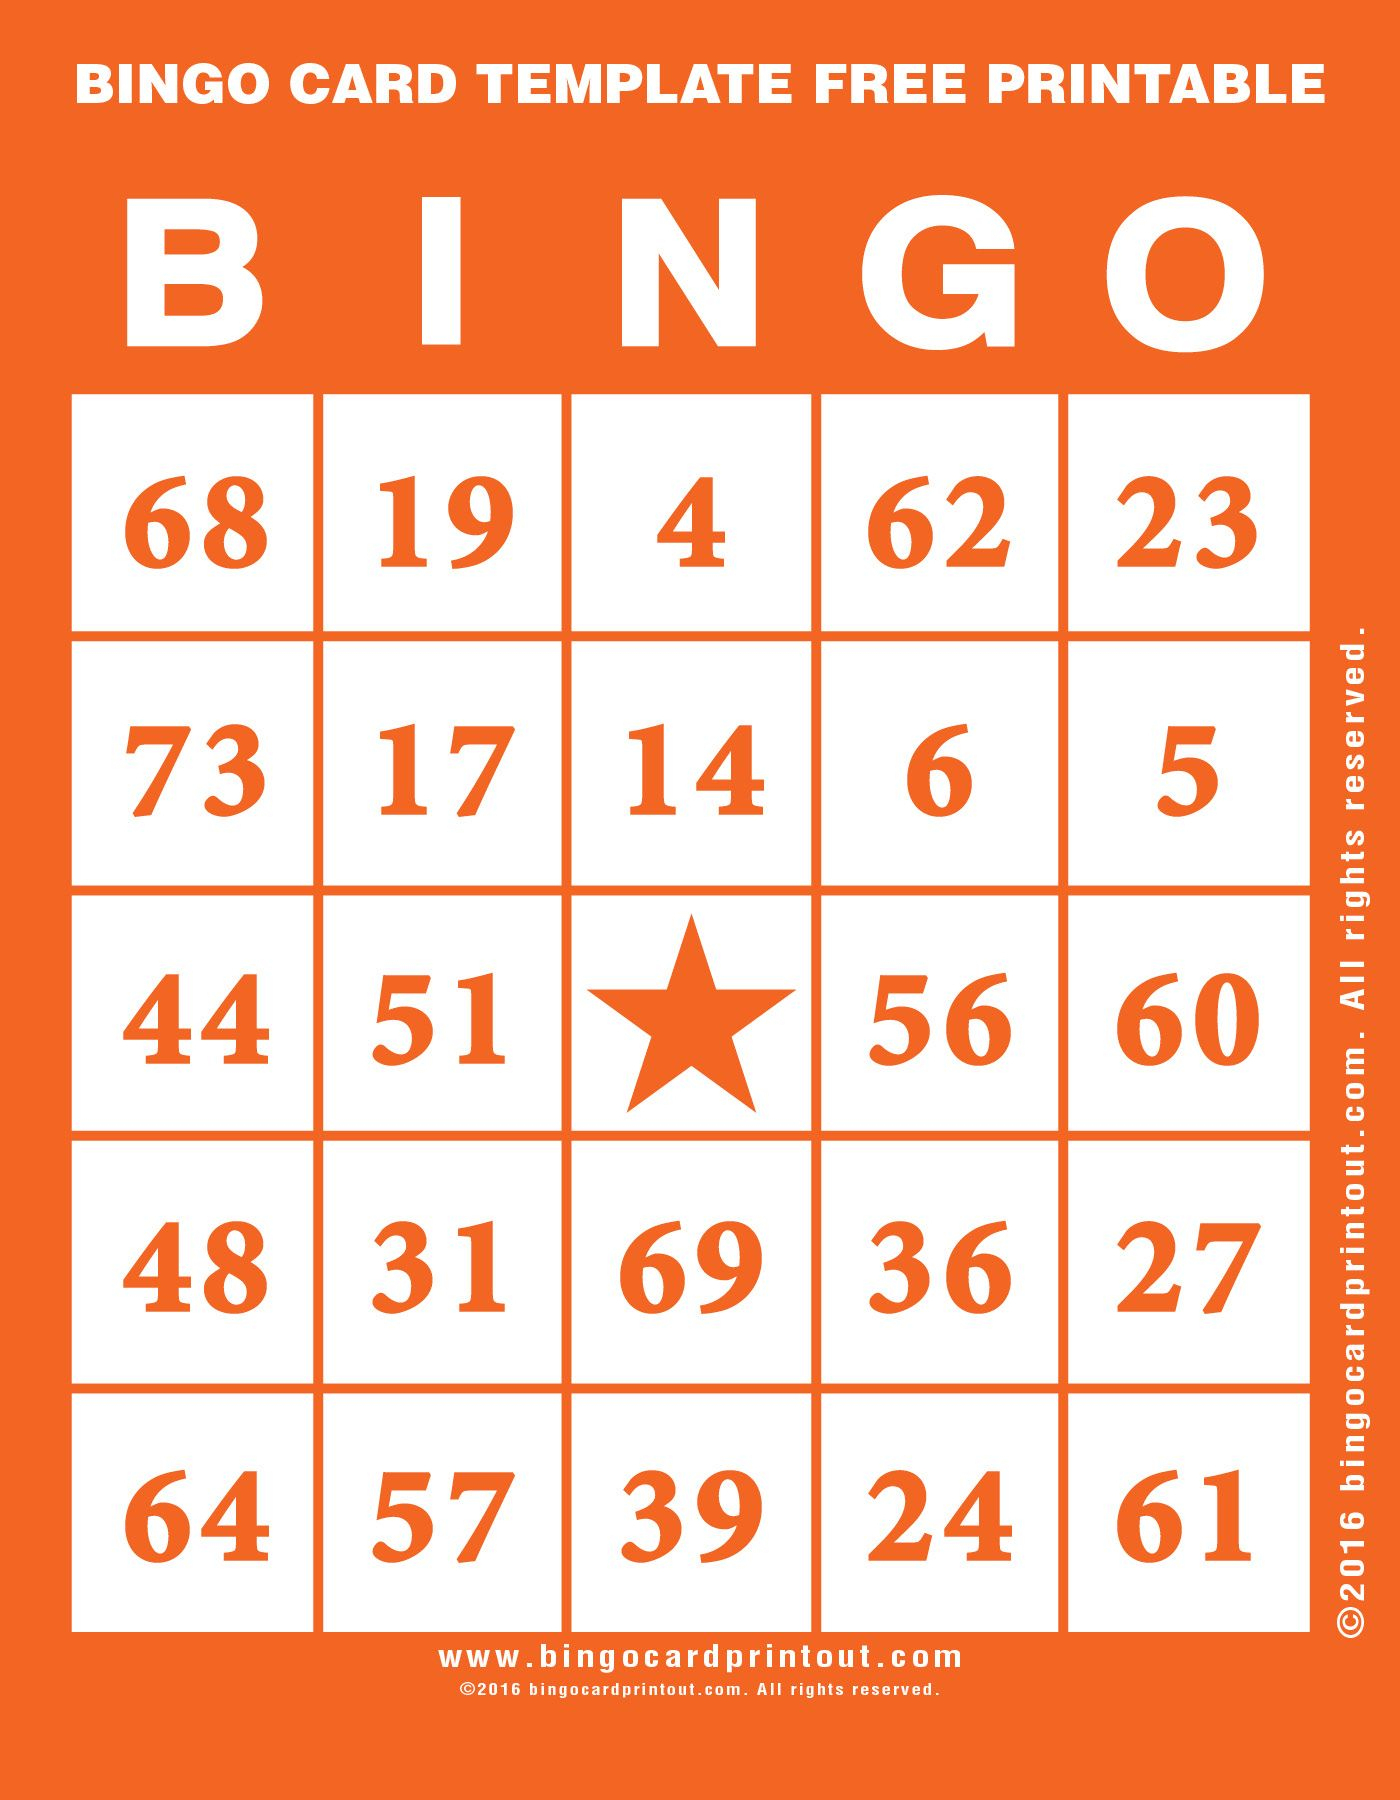 Bingo Card Template Free Printable 2 | Bingo Card Template